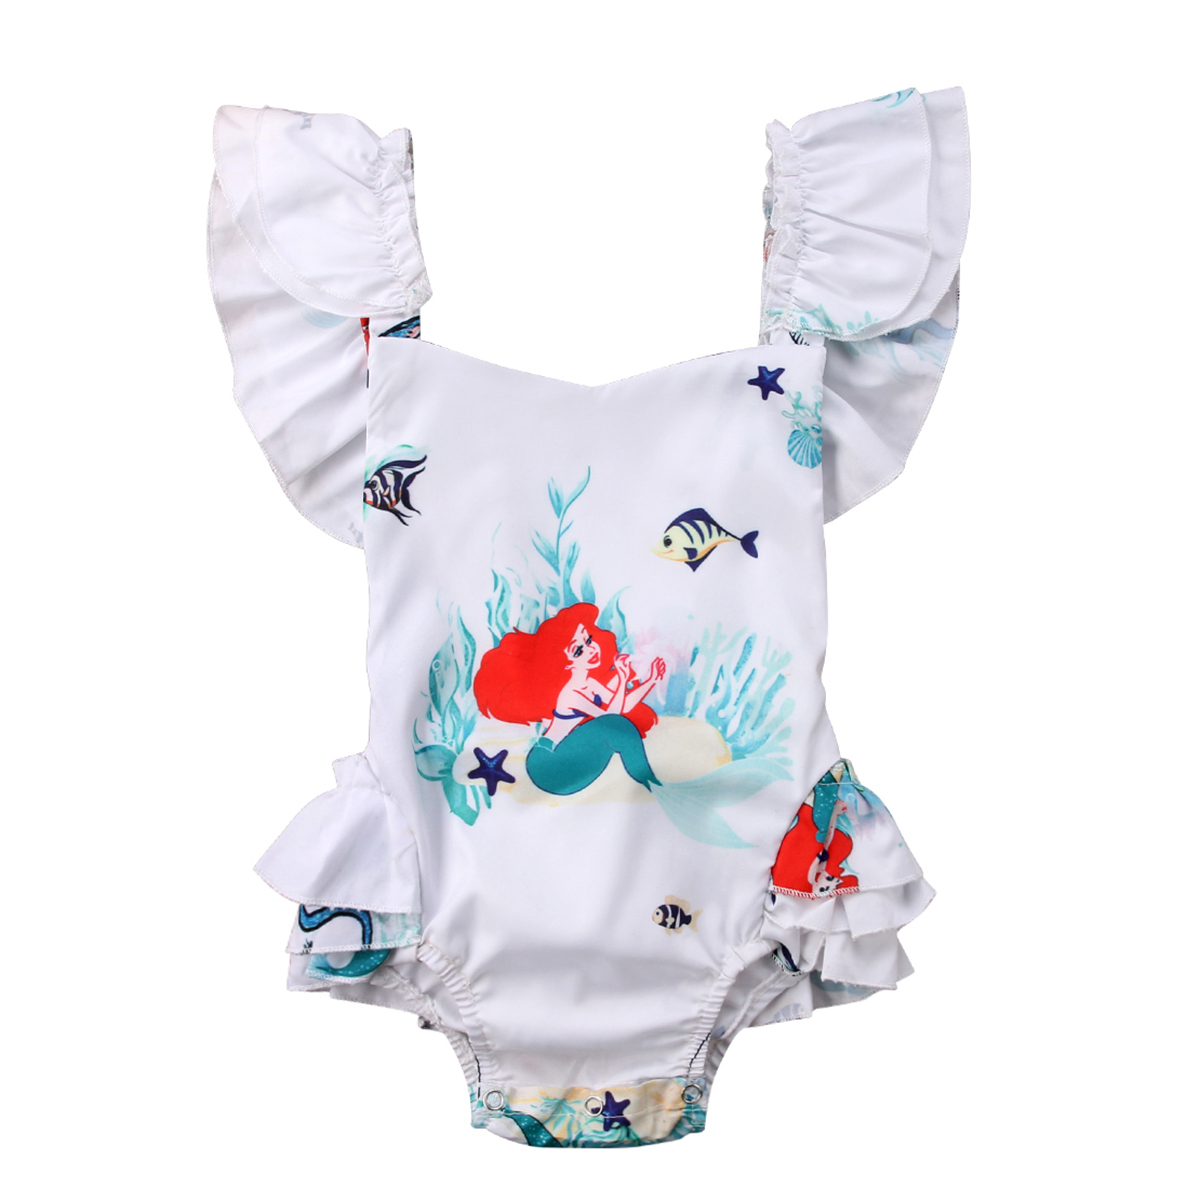 Kids Newborn Baby Girl Mermaid Romper Baby Girls Summer Backless Jumpsuit Cotton Baby Clothing